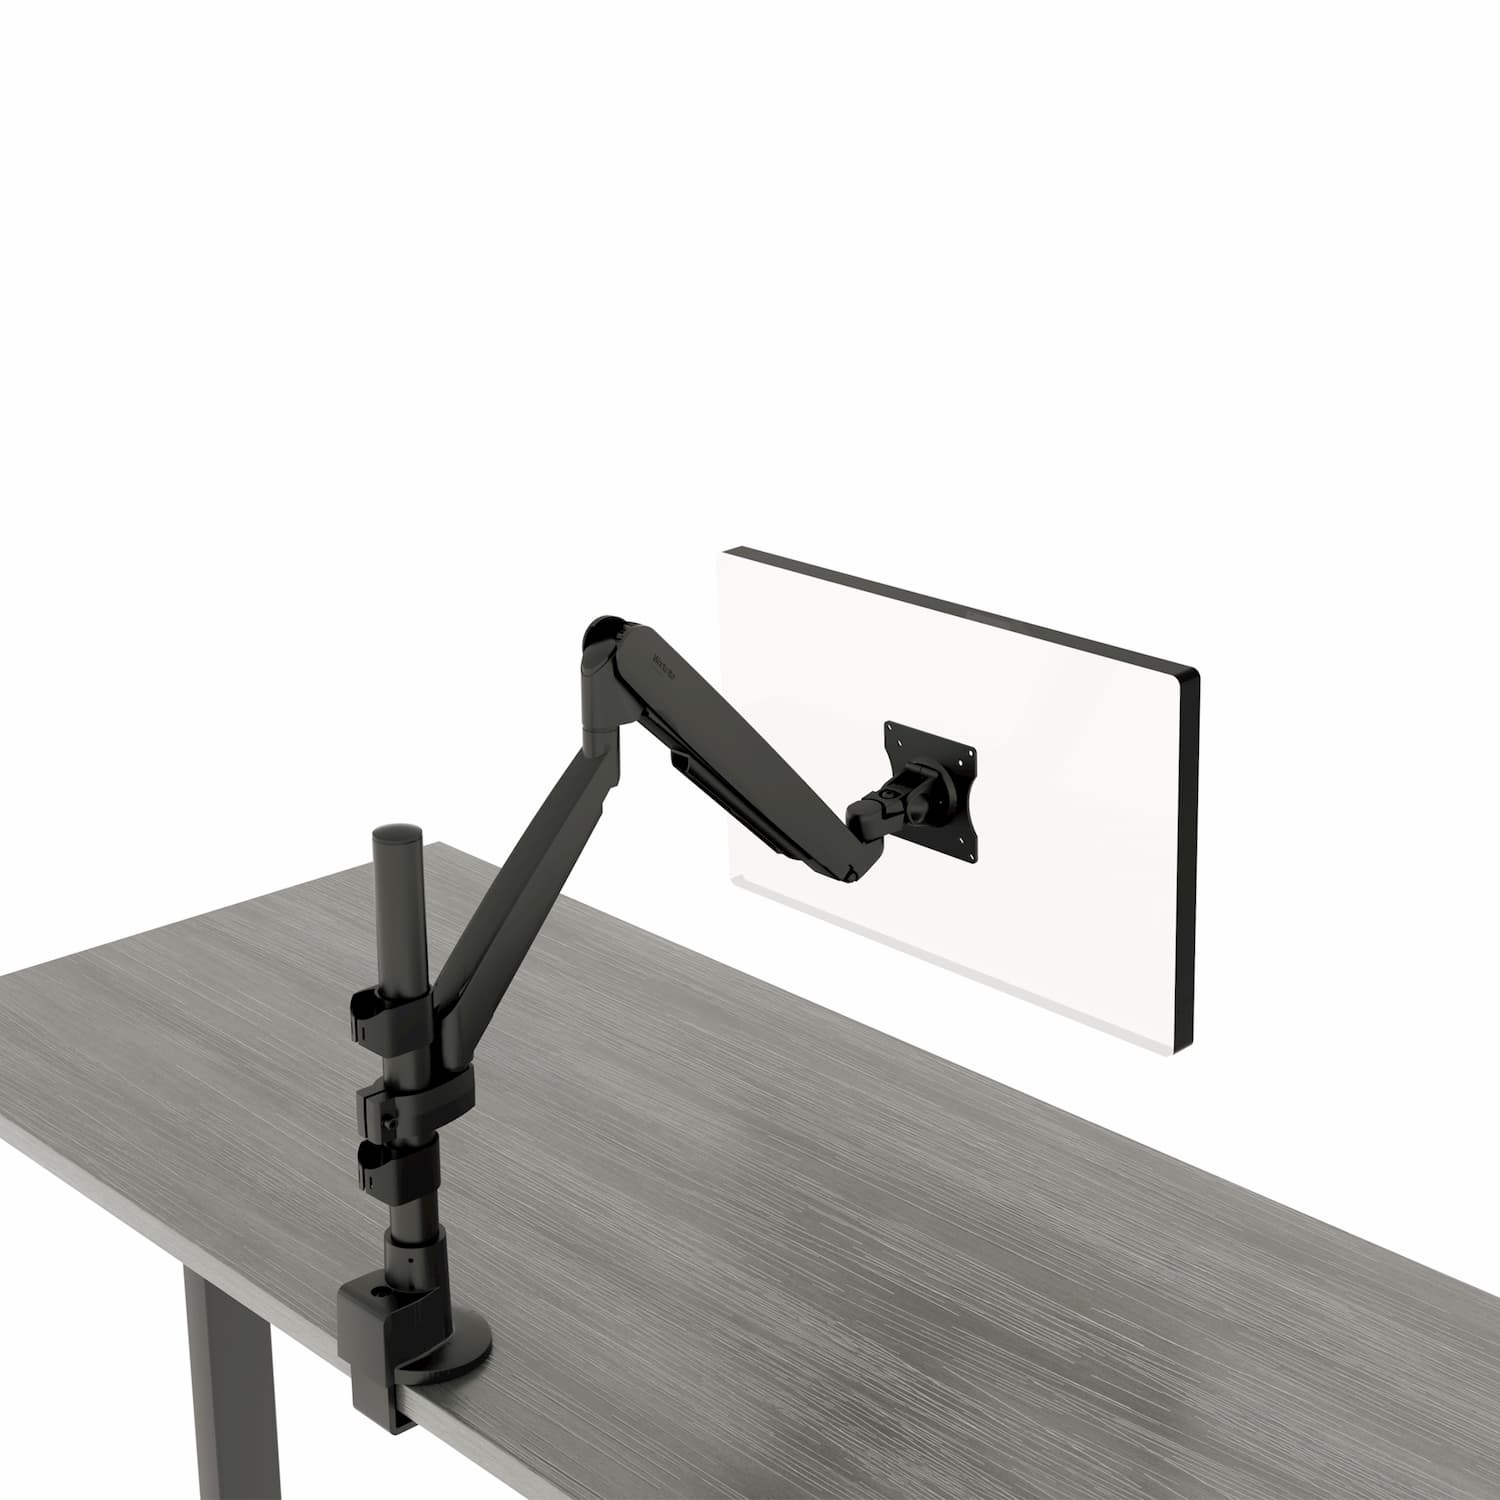 conform-sts-sit-to-stand-monitor-arm